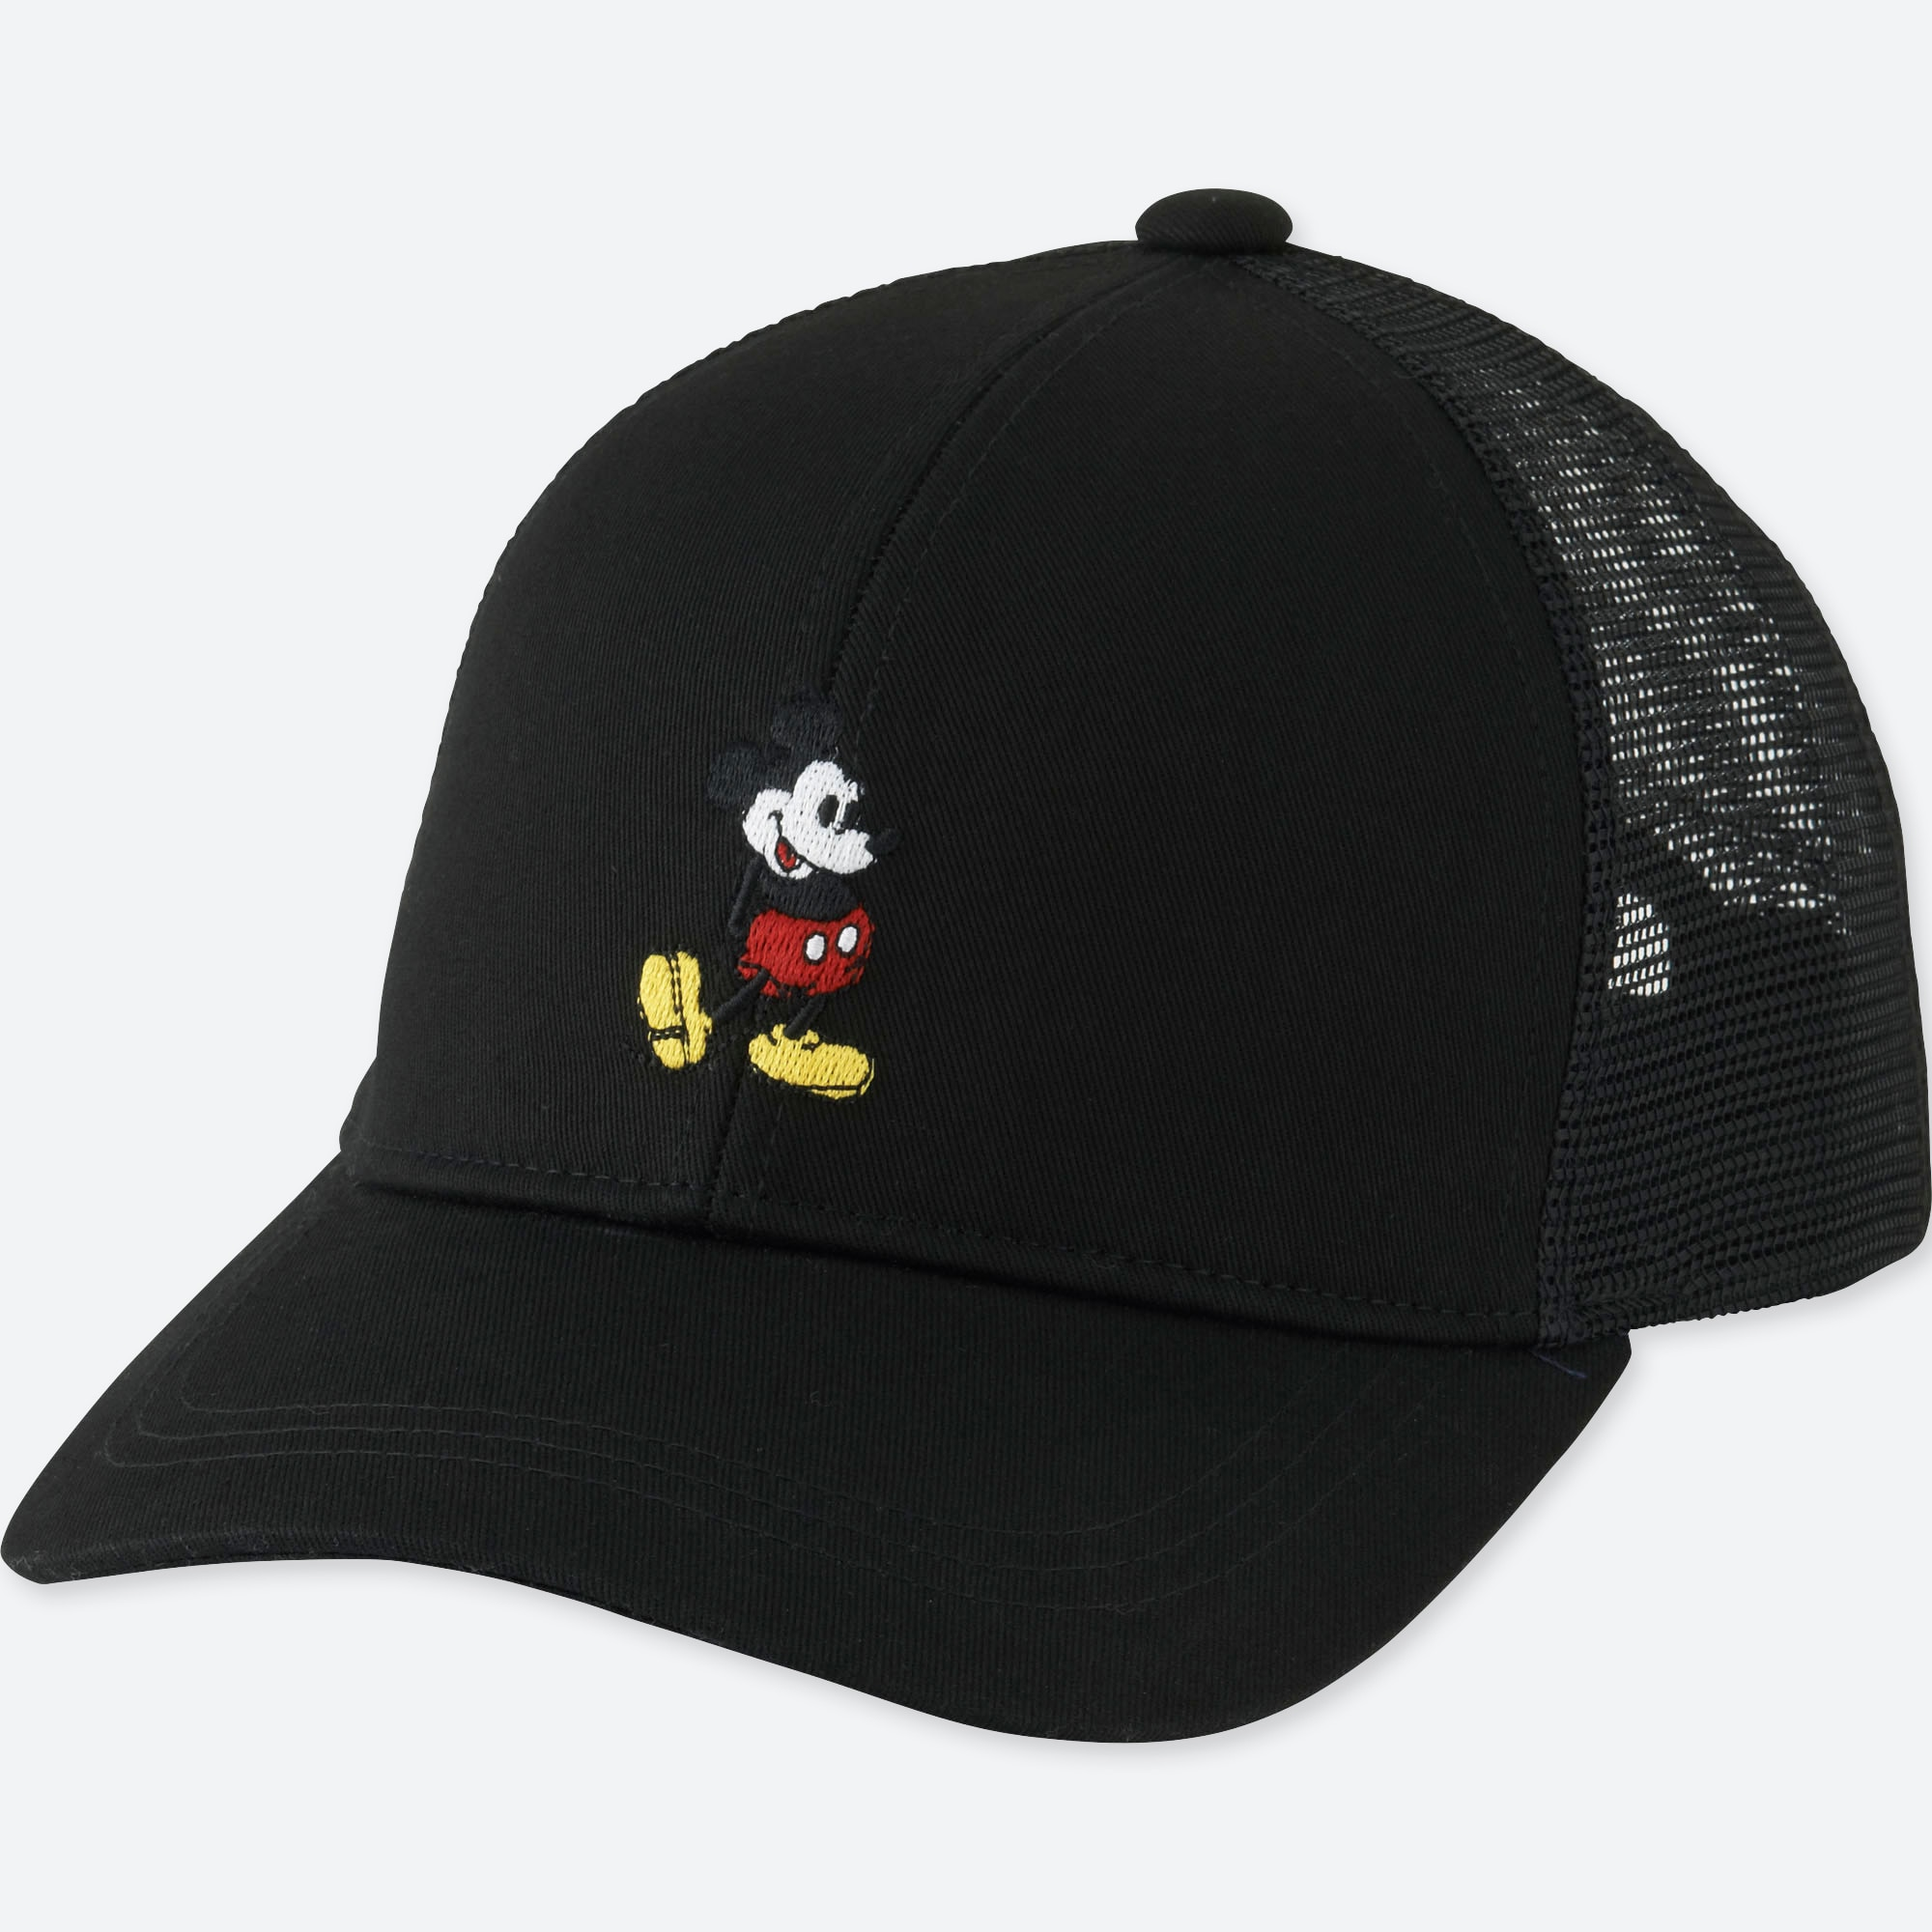 new style d6122 d70a1 KIDS MICKEY STANDS MESH CAP, BLACK, large Opens a New Window.